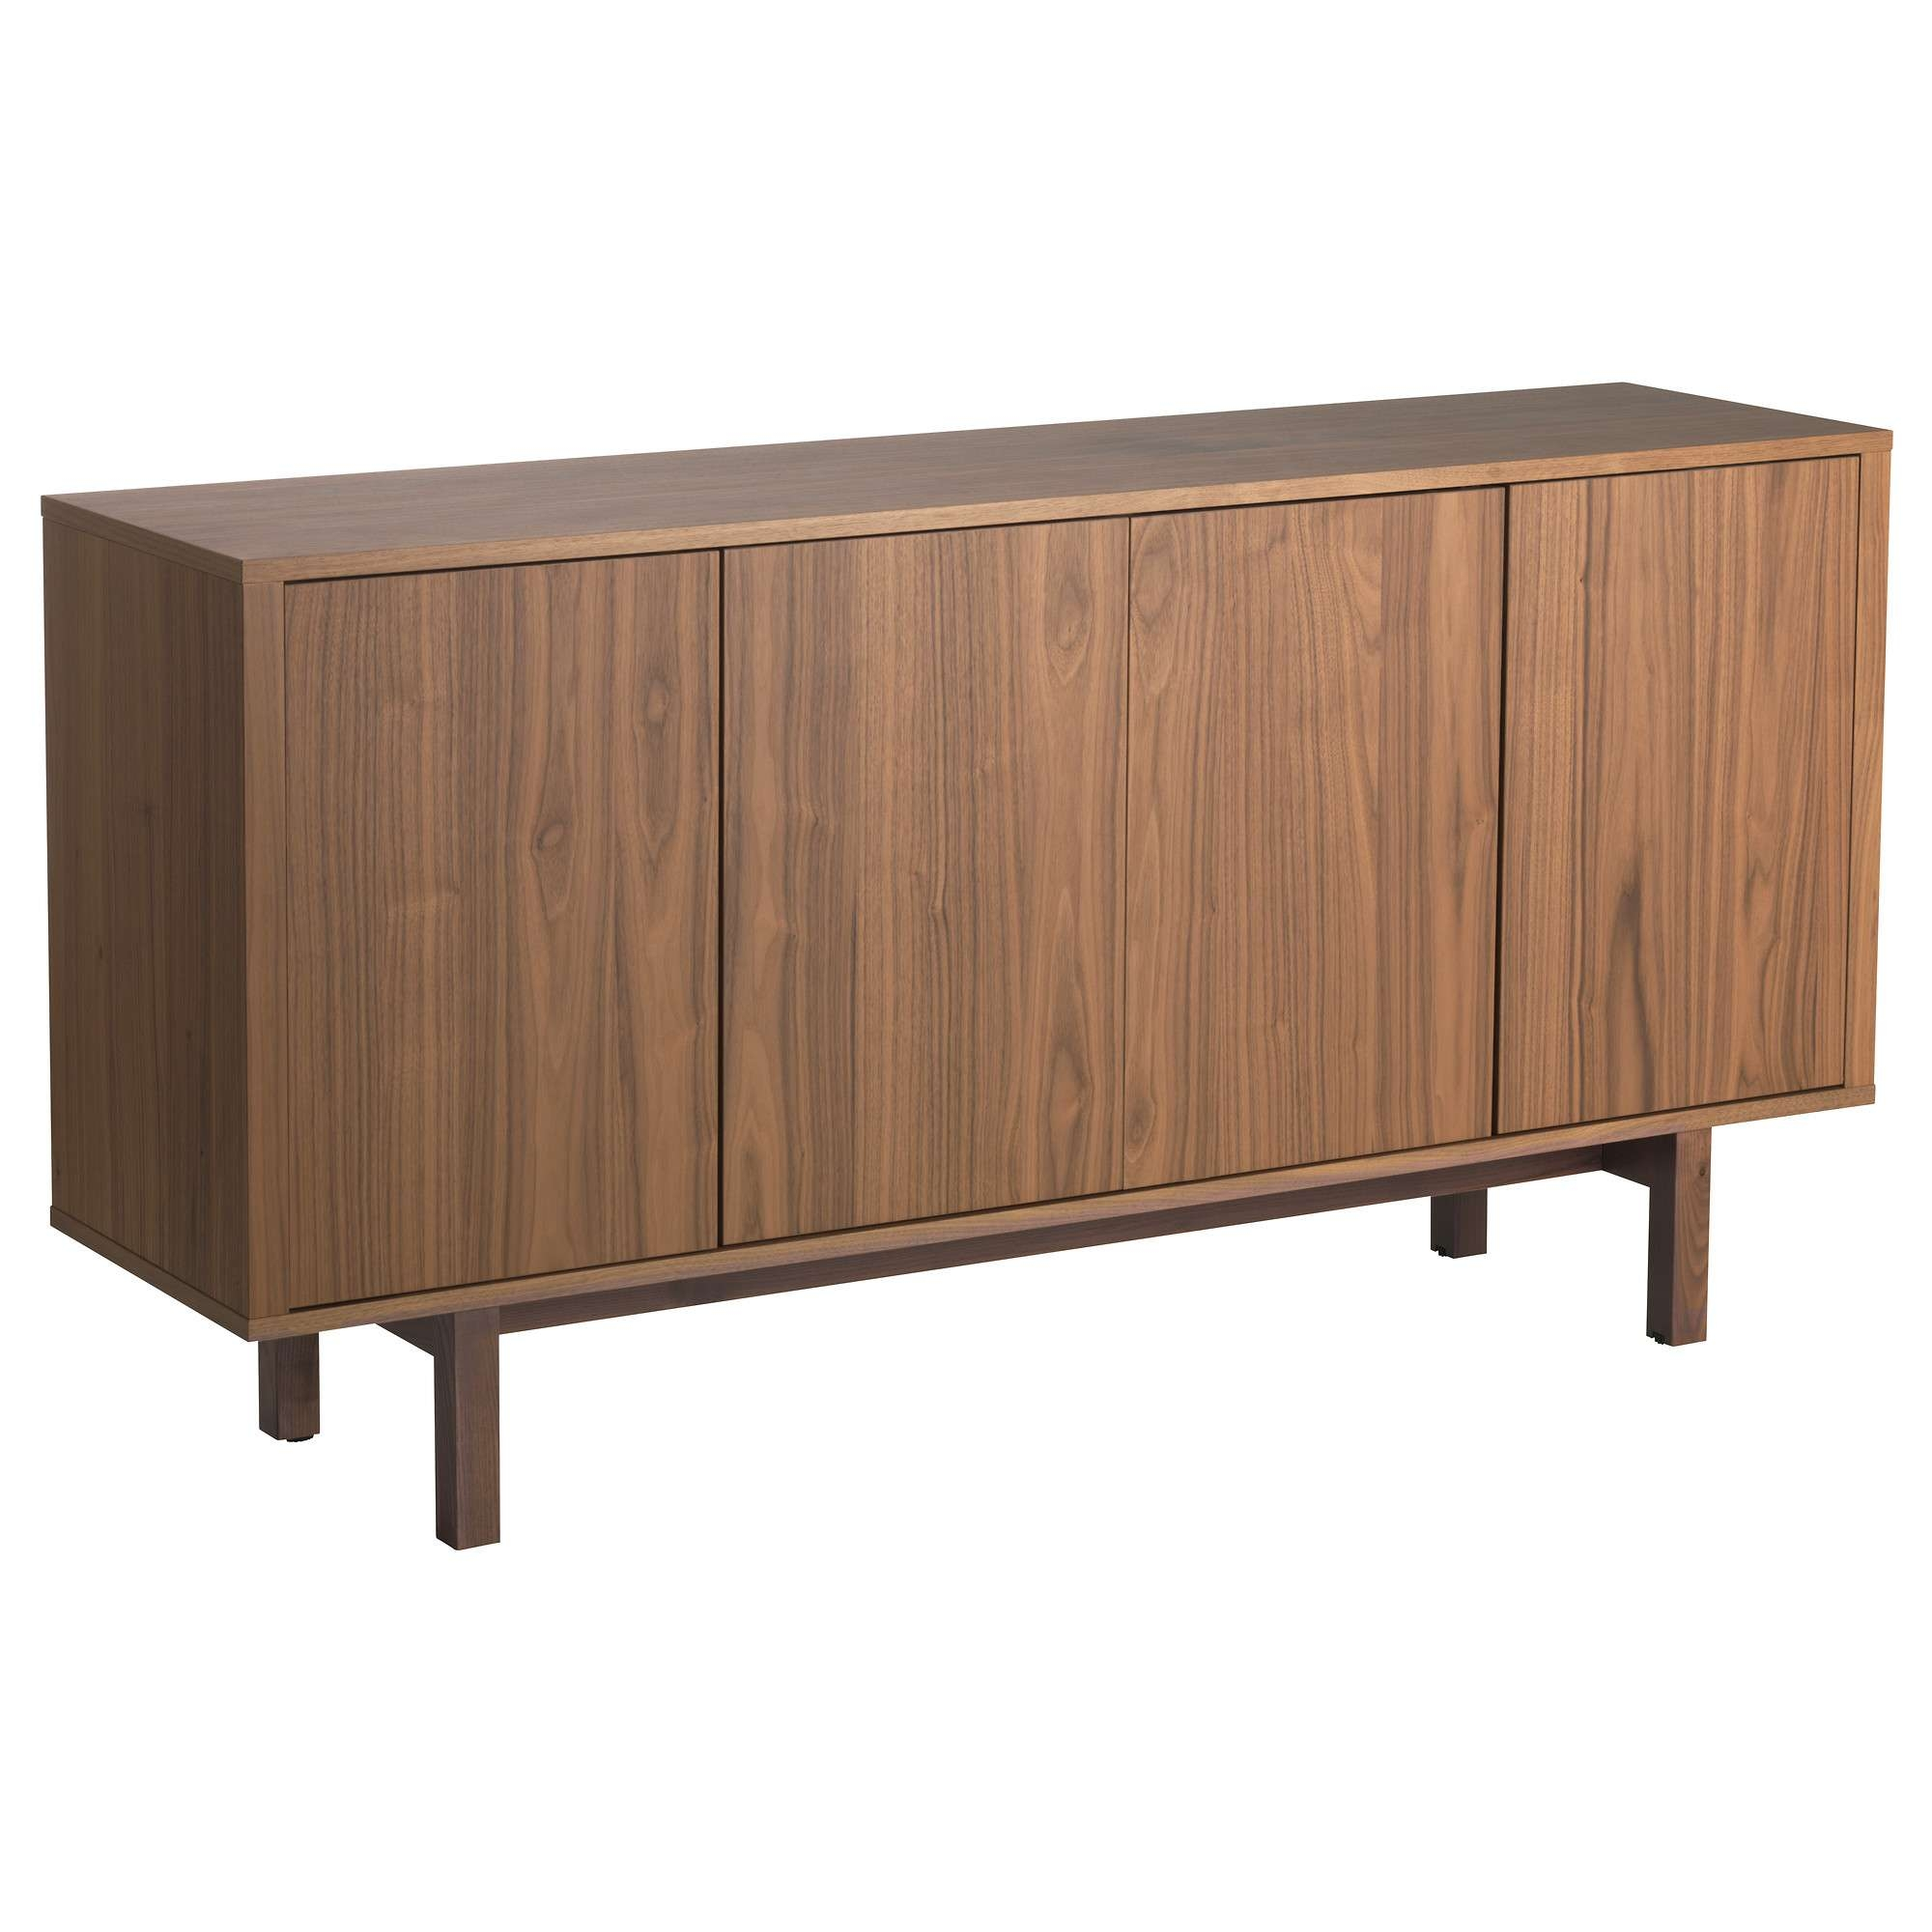 Stockholm Sideboard Walnut Veneer 160X81 Cm – Ikea With Sideboards And Tables (View 20 of 20)